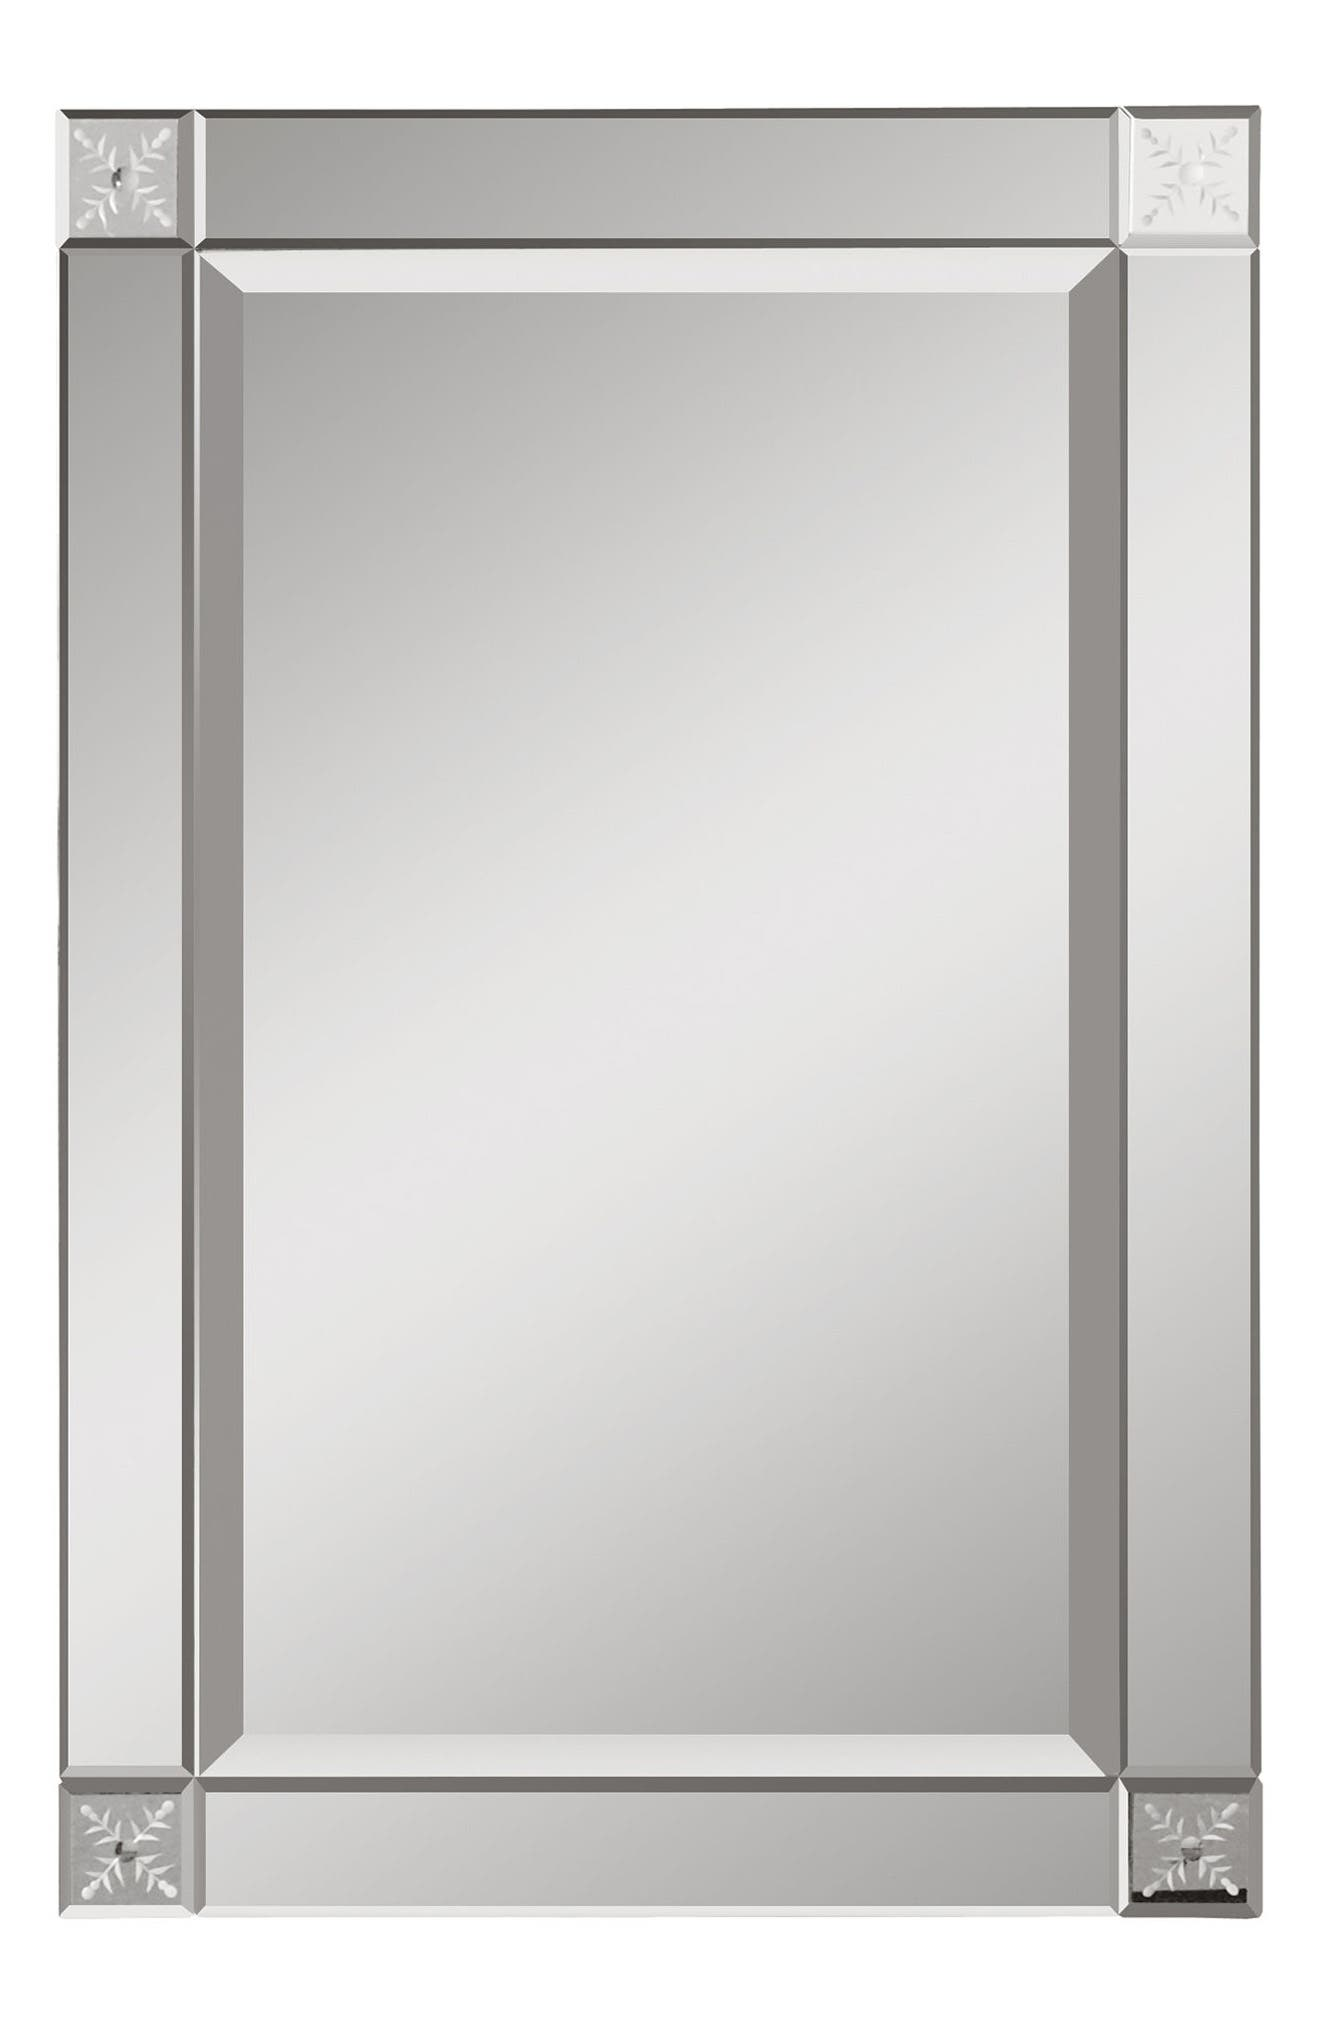 Alternate Image 1 Selected - Uttermost Emberlynn Frameless Wall Mirror